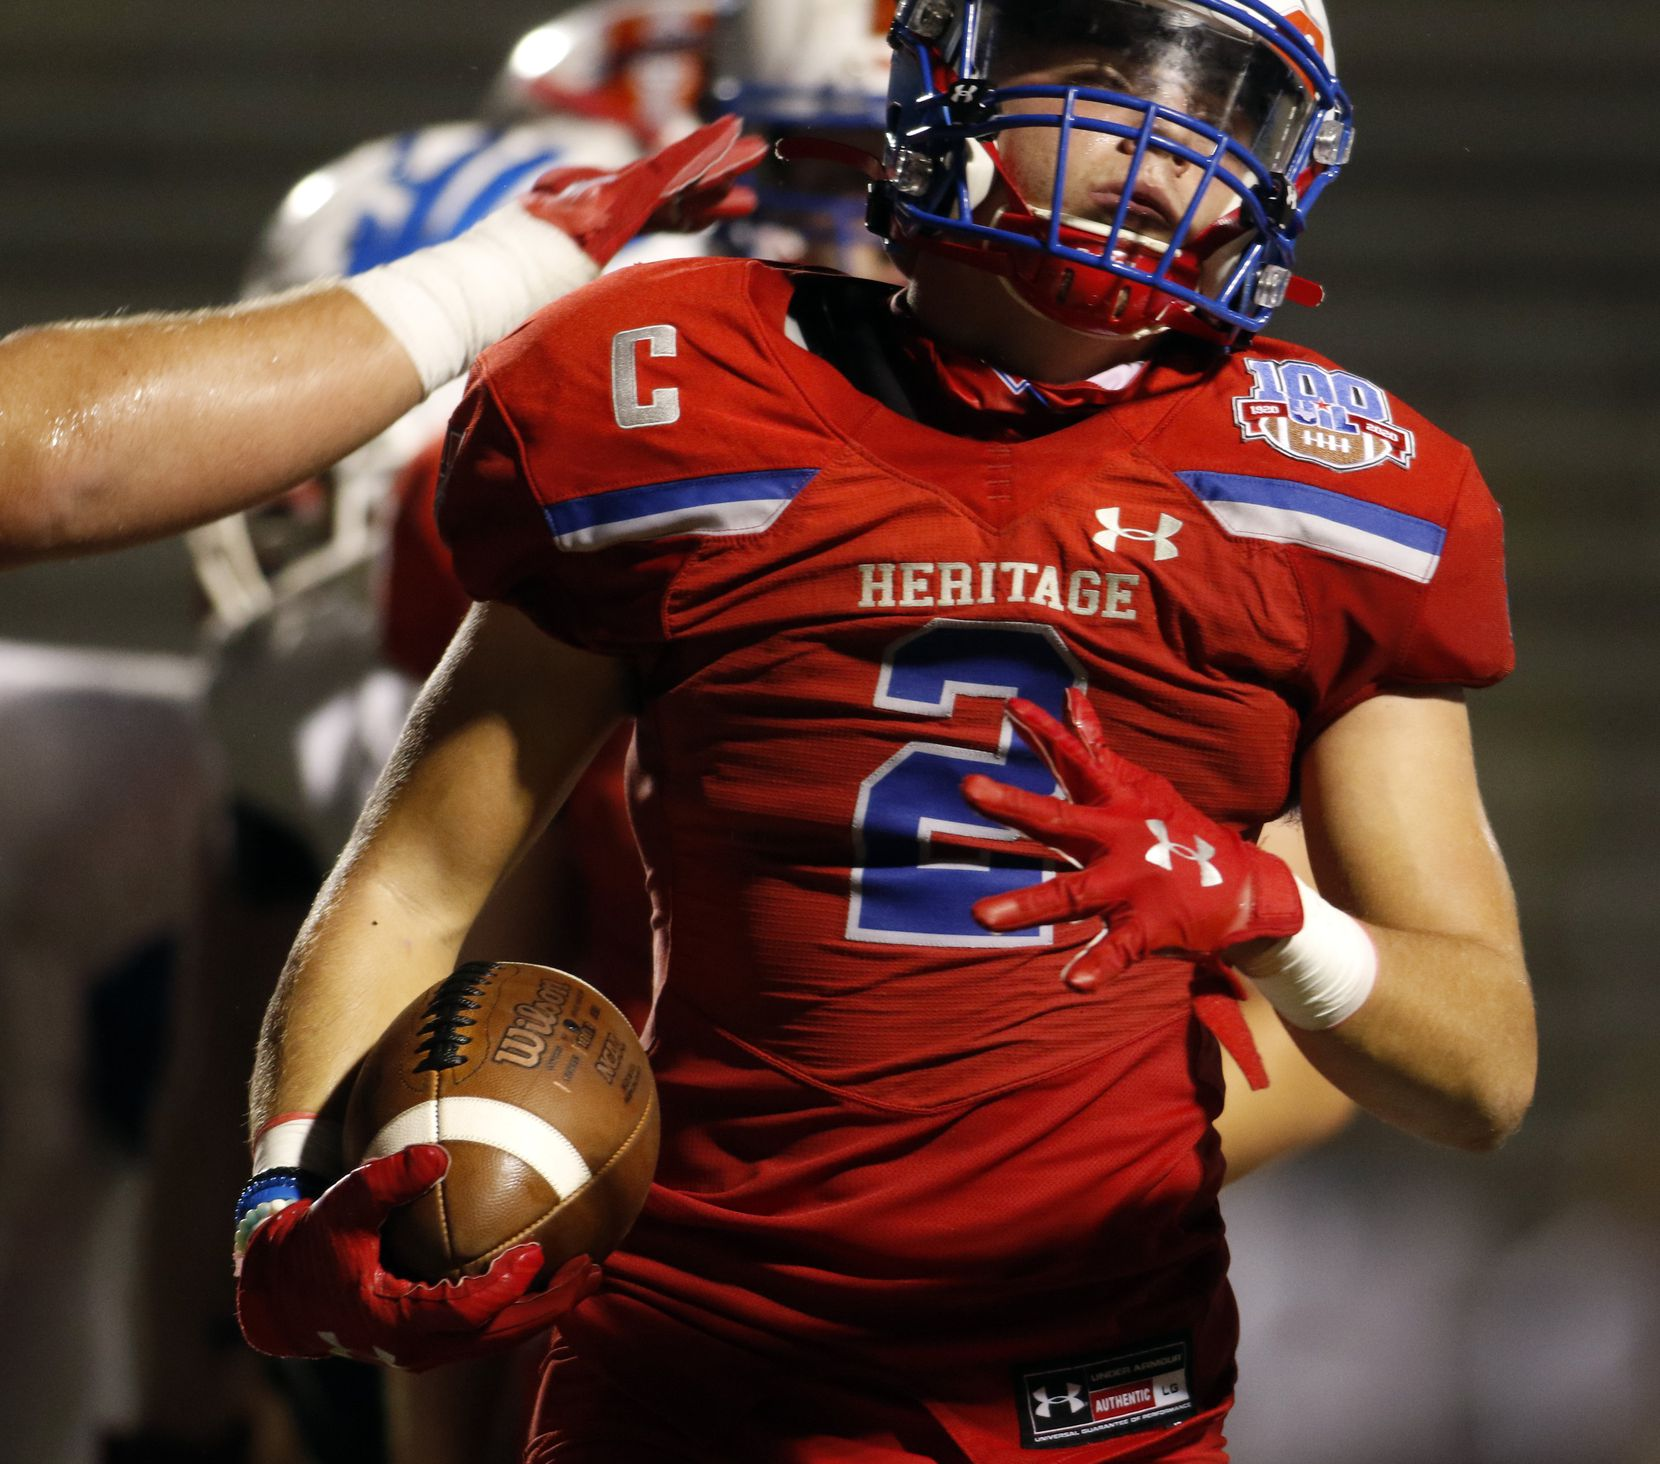 Midlothian Heritage running back Cullen Stone (2) receives a pat on the back from a teammate following a fourth quarter rushing touchdown. The two teams played their Class 4A football game at Midlothian ISD Multipurpose Stadium in Midlothian on September 4, 2020. (Steve Hamm/ Special Contributor)